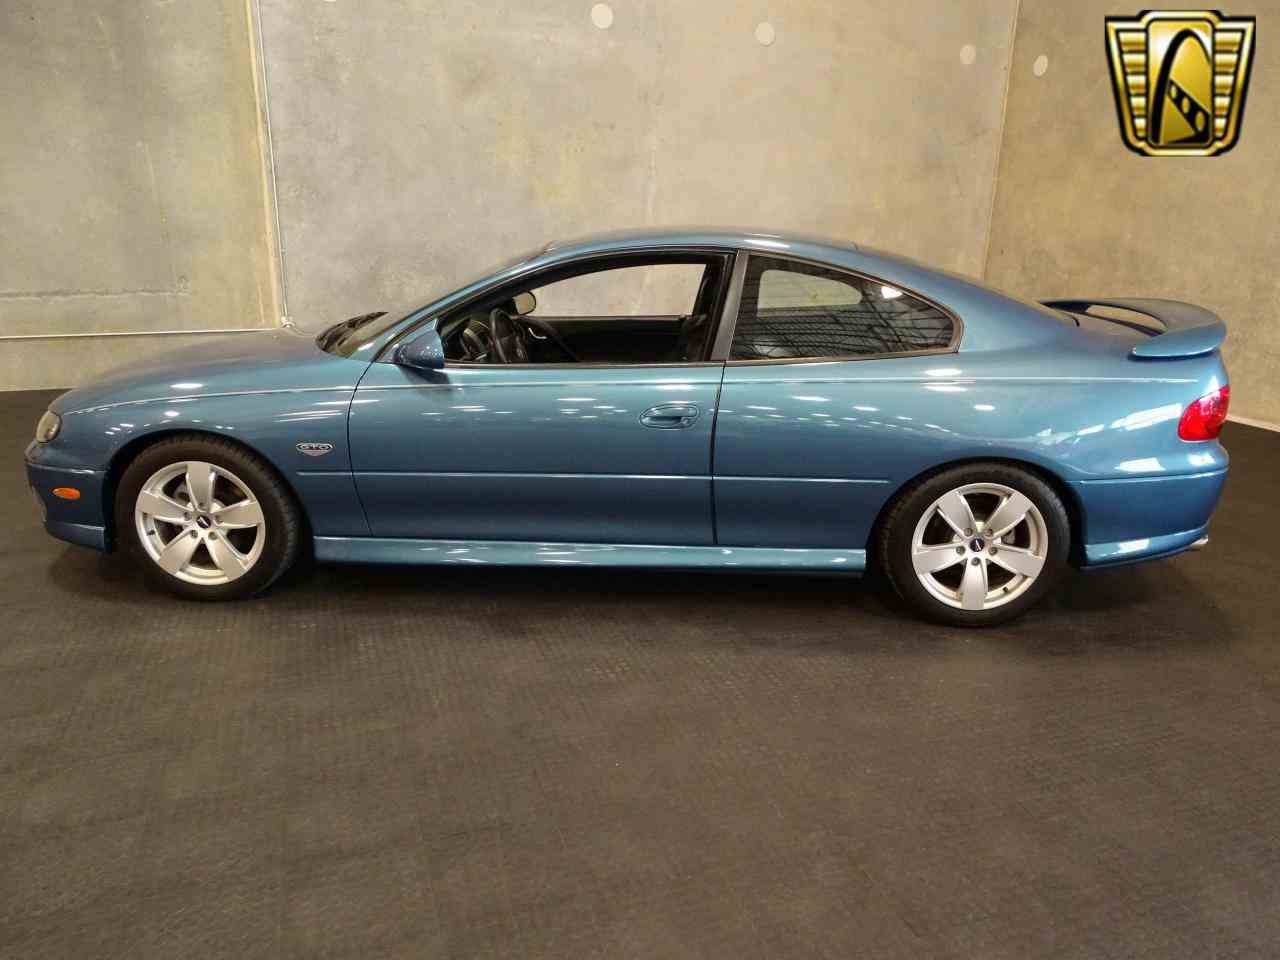 Large Picture of '04 Pontiac GTO located in Ruskin Florida - $21,995.00 - KDOG